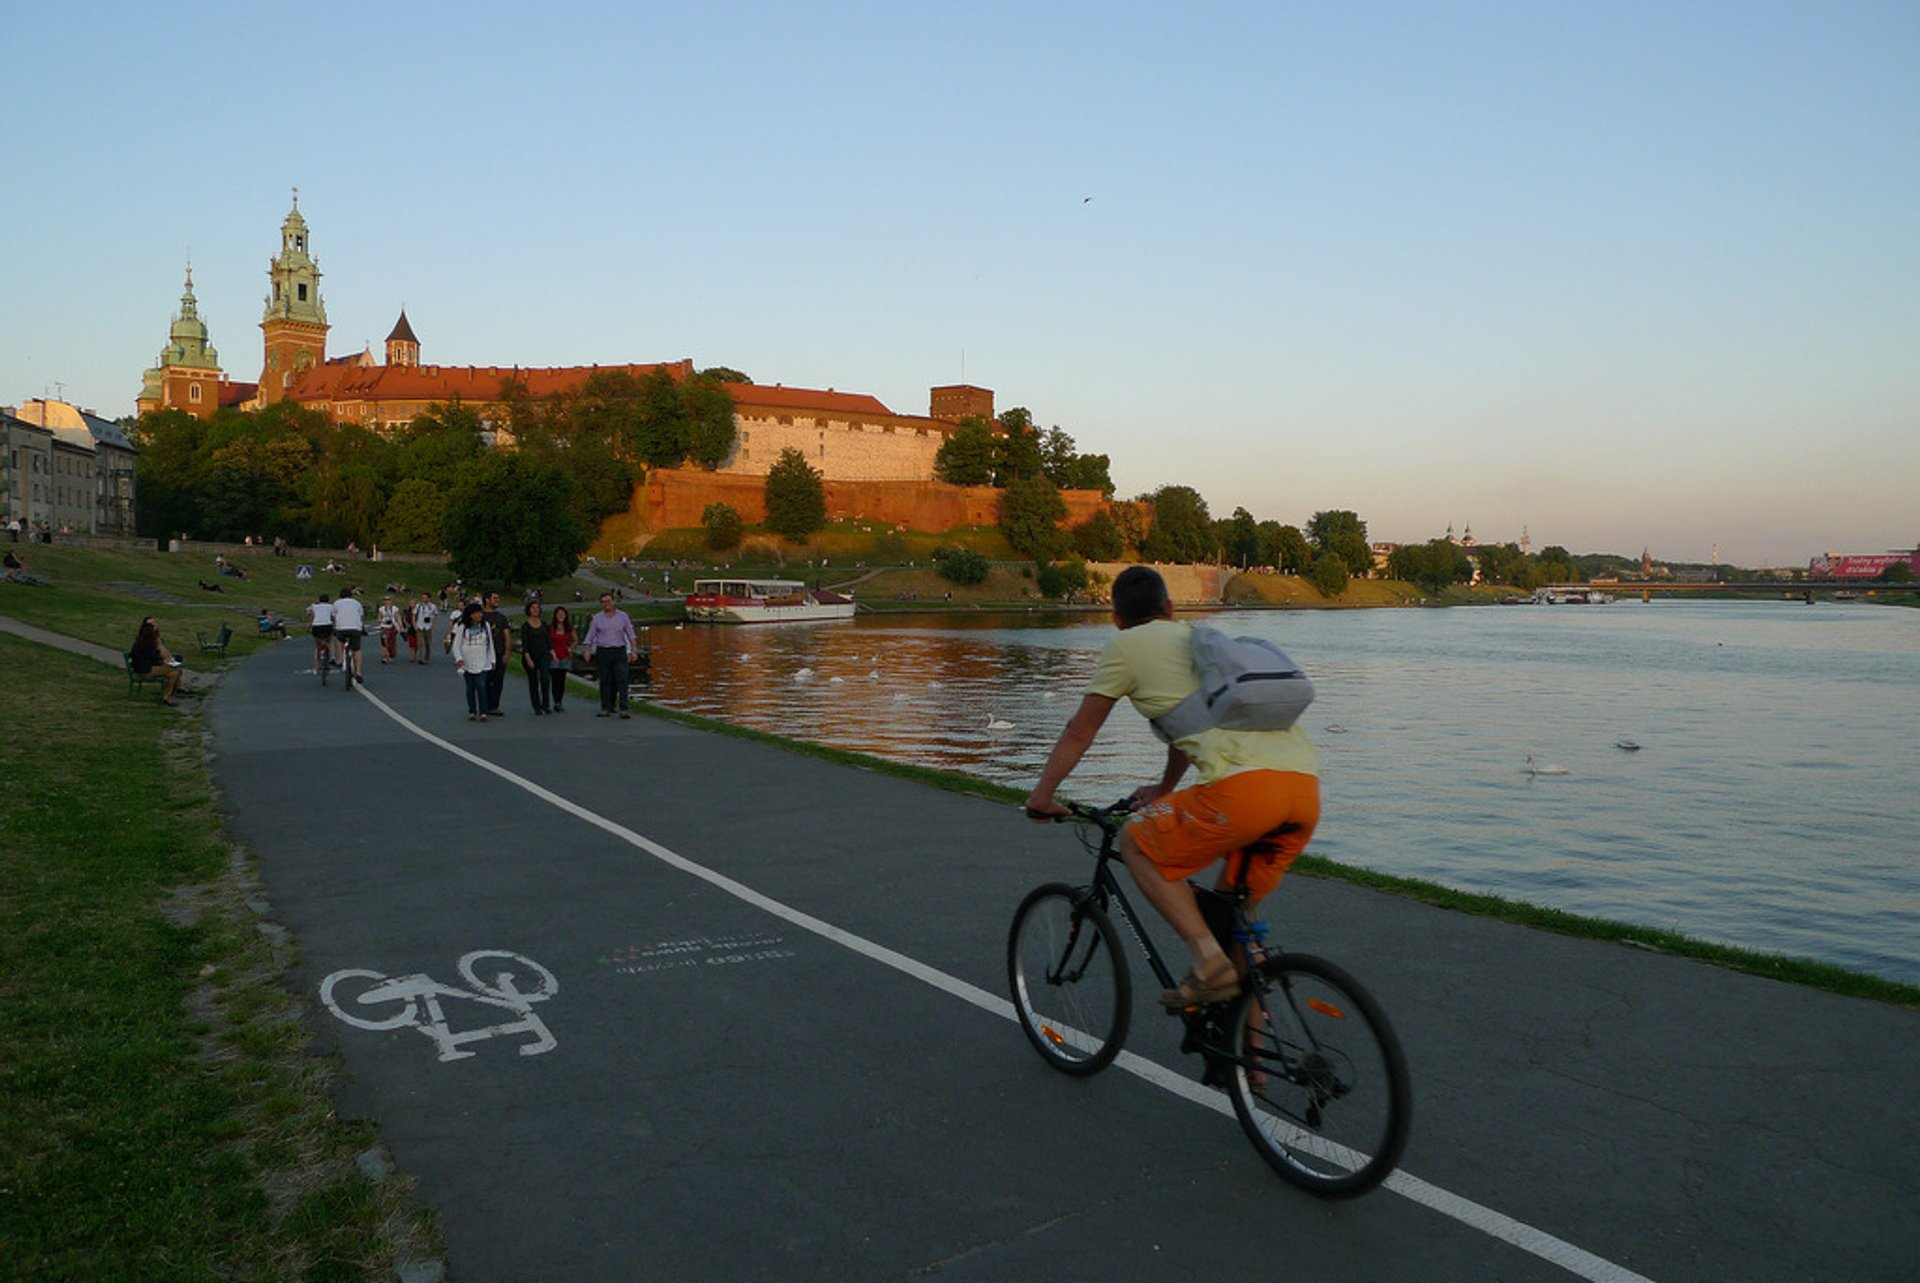 Cycling in Bulwar Kurlandzki on Vistula River close to Krakow Castle 2019